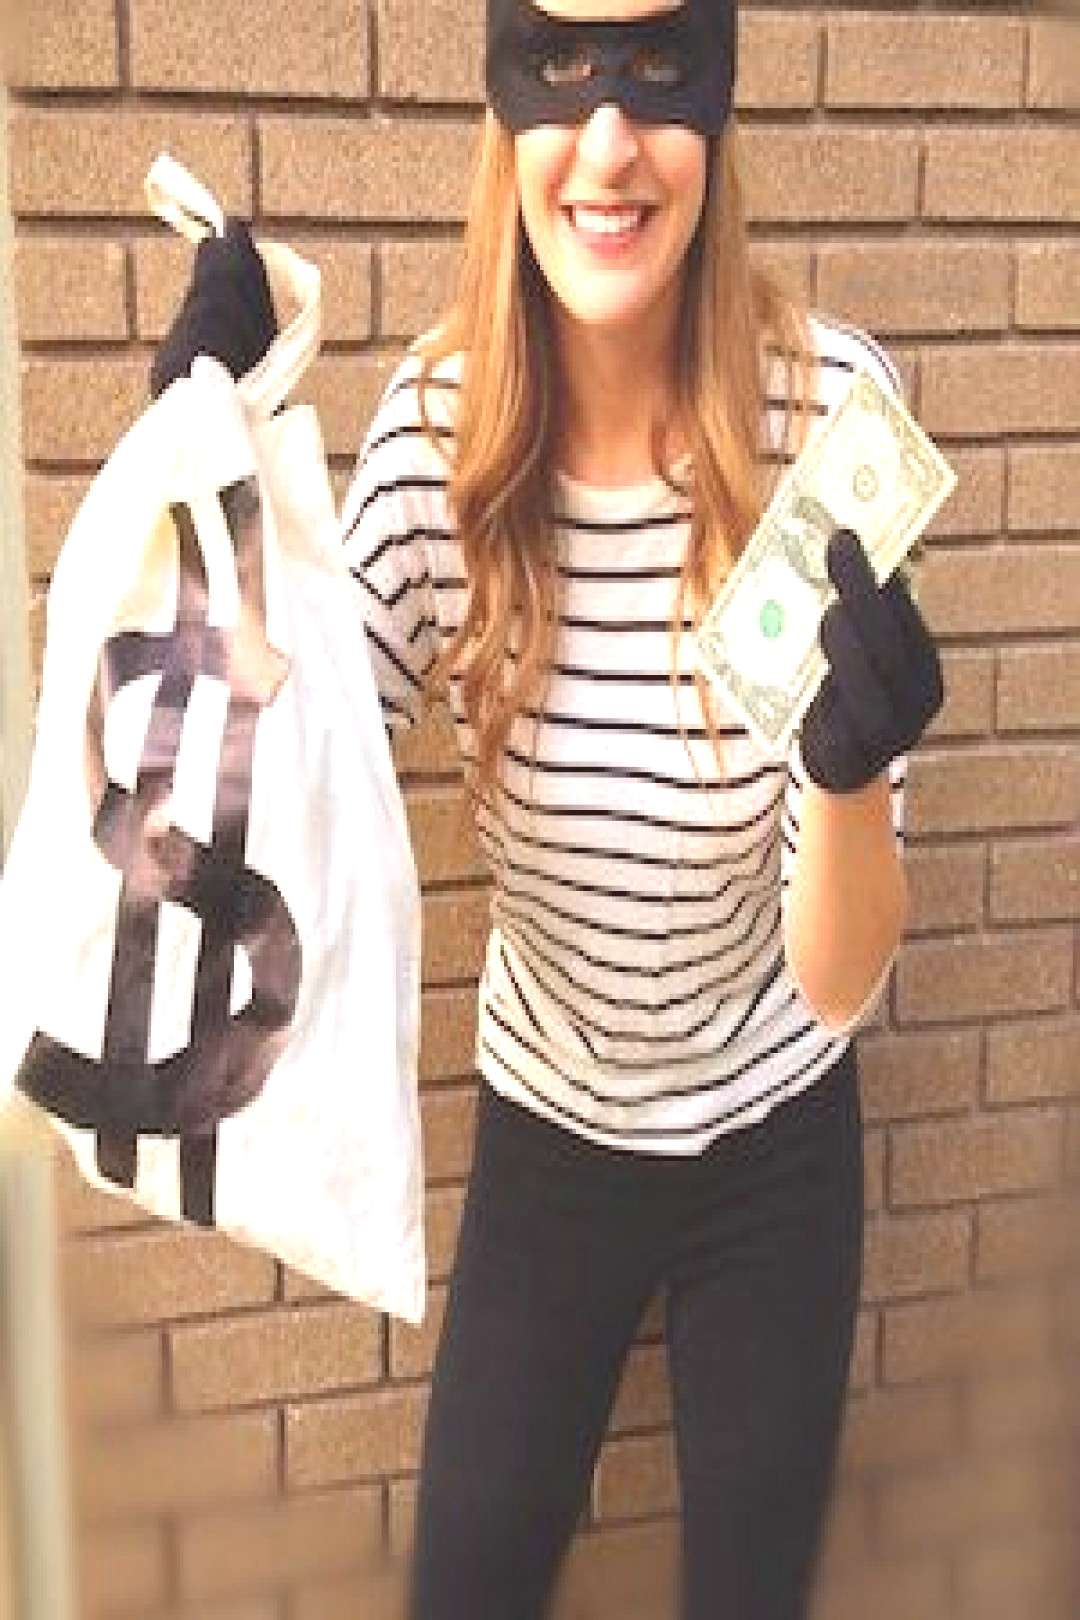 100 Cheap and Easy DIY Halloween Costume Ideas - Prudent Penny Pincher